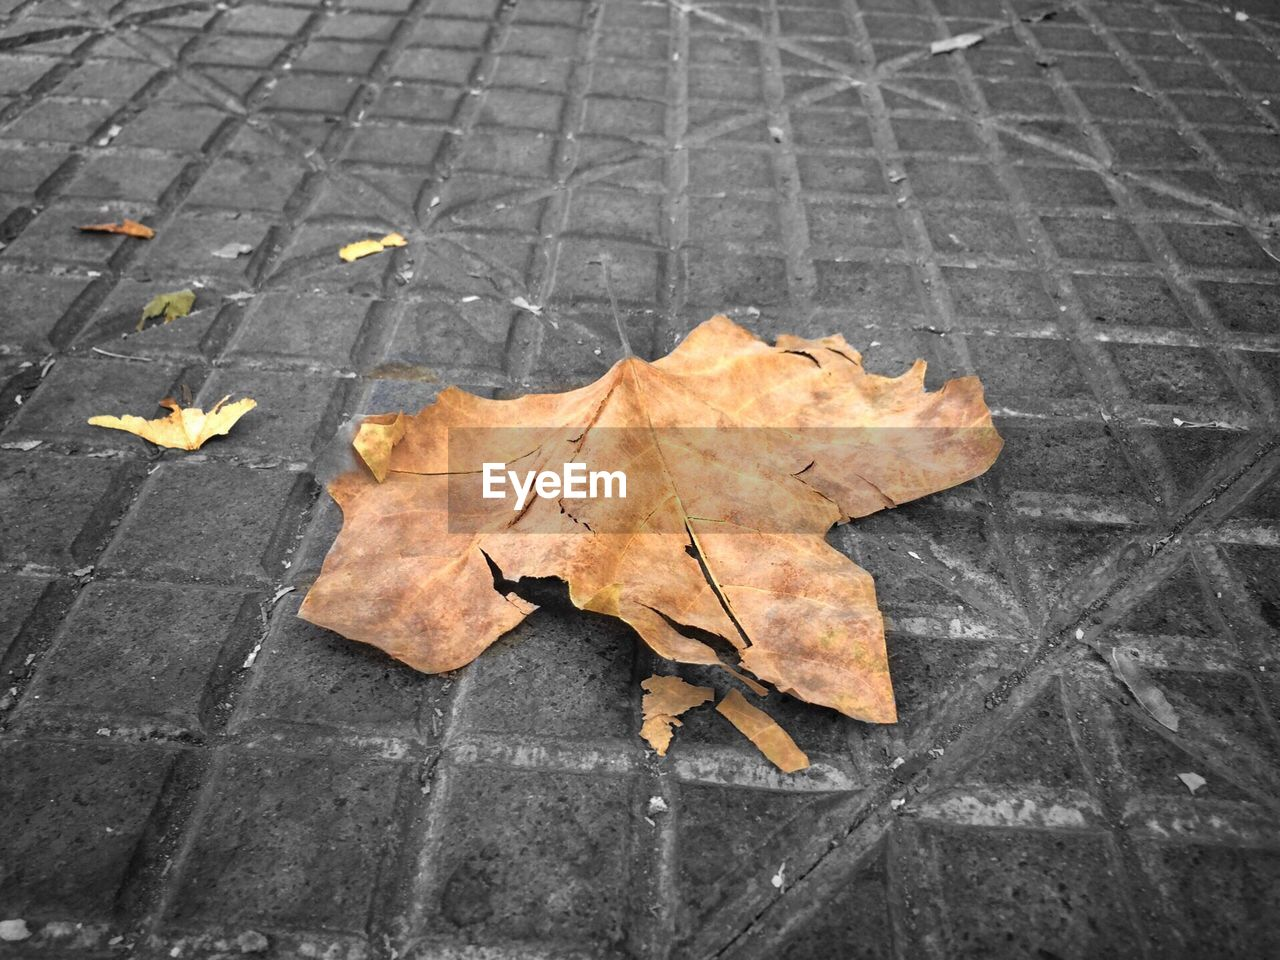 autumn, leaf, change, dry, leaves, maple, maple leaf, fallen, outdoors, day, nature, high angle view, no people, street, fragility, beauty in nature, close-up